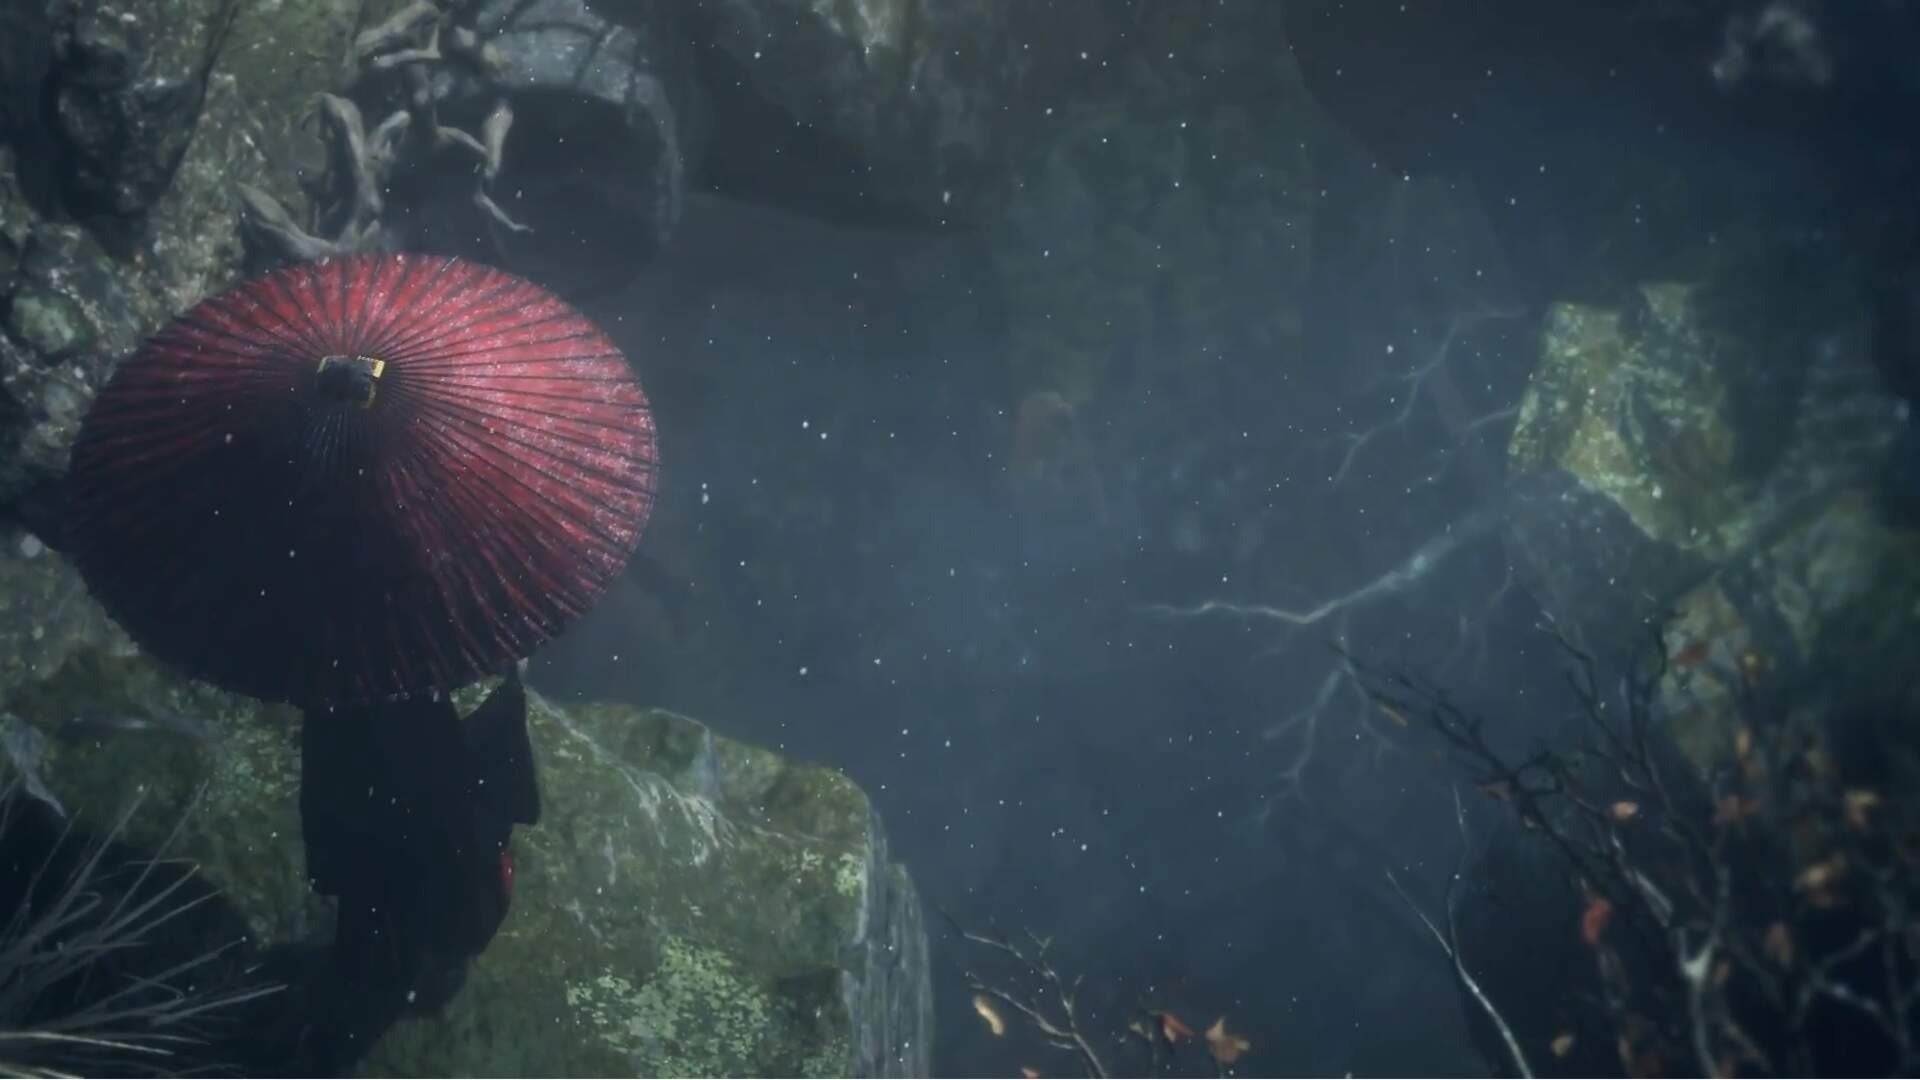 New Sekiro Shadows Die Twice Trailer Shows Off New Bosses and Stealth Takedowns